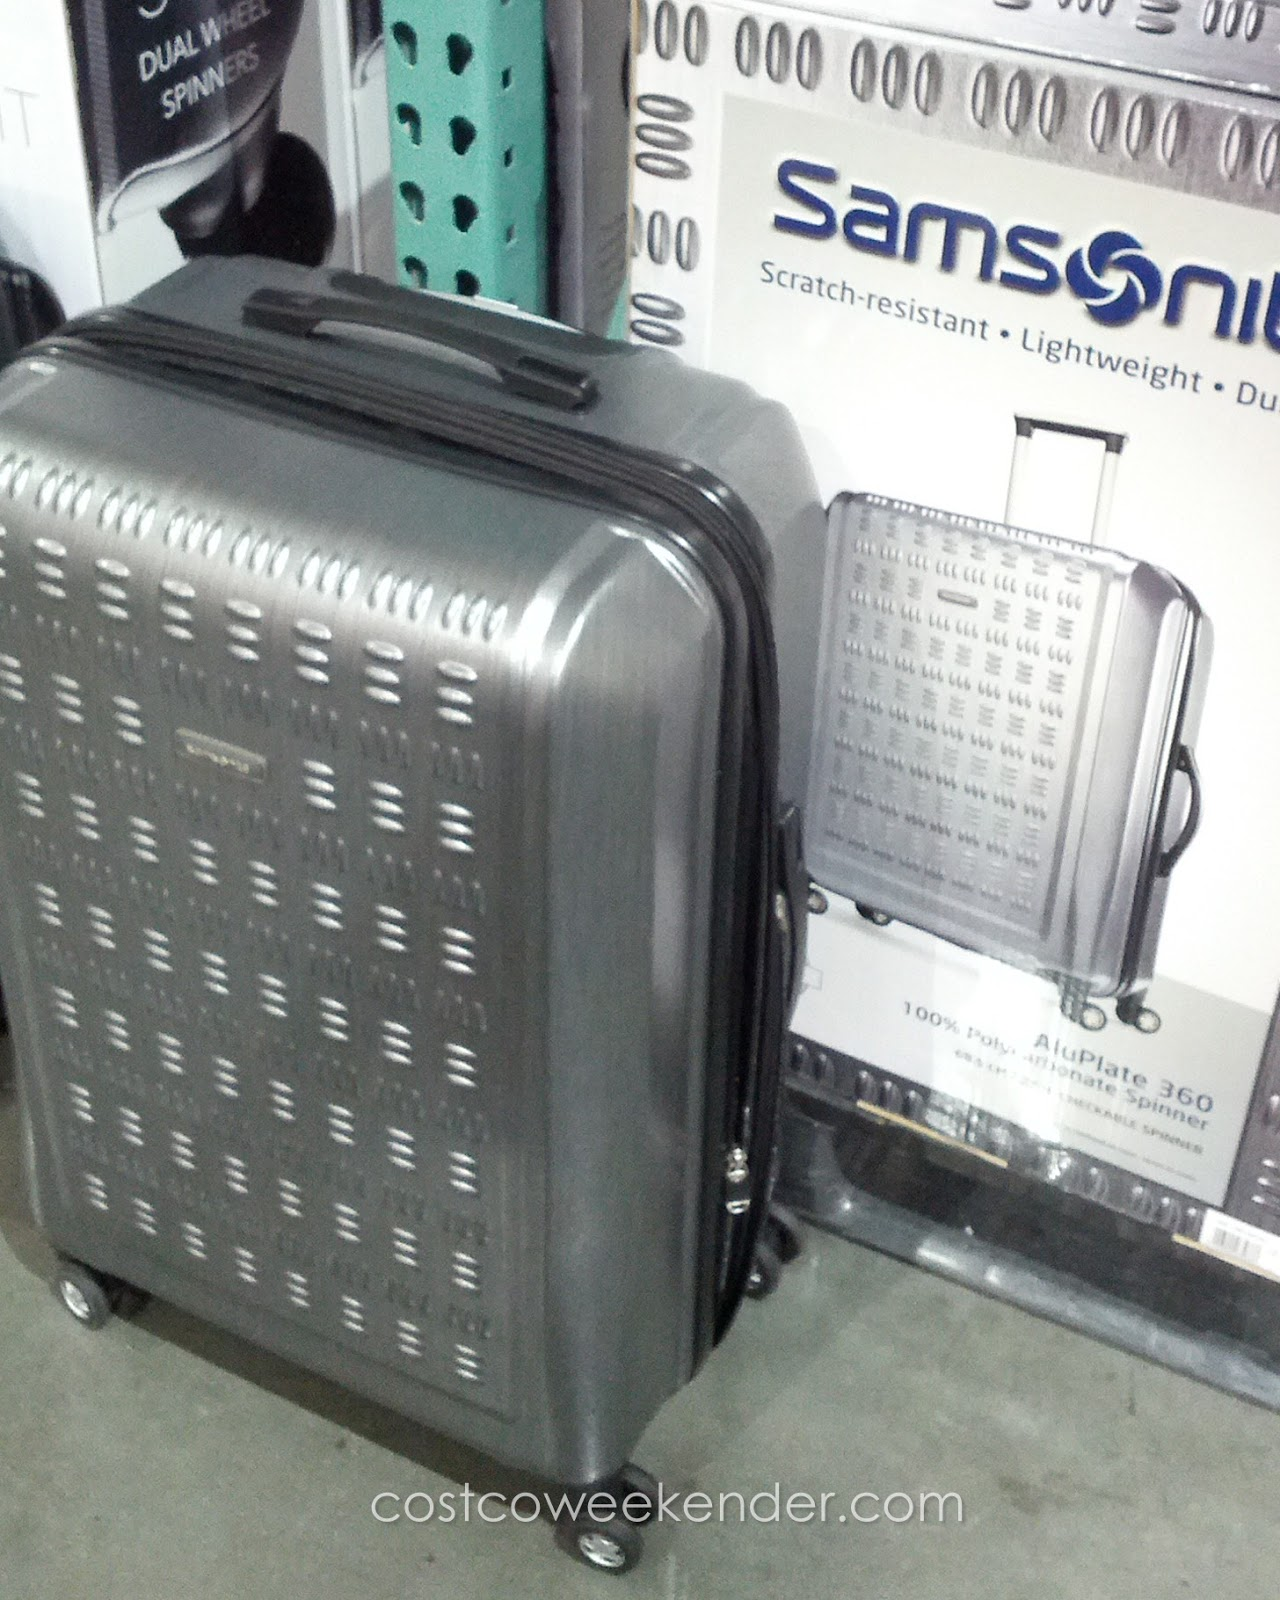 Samsonite Mobile Office Costco Techieblogie Info